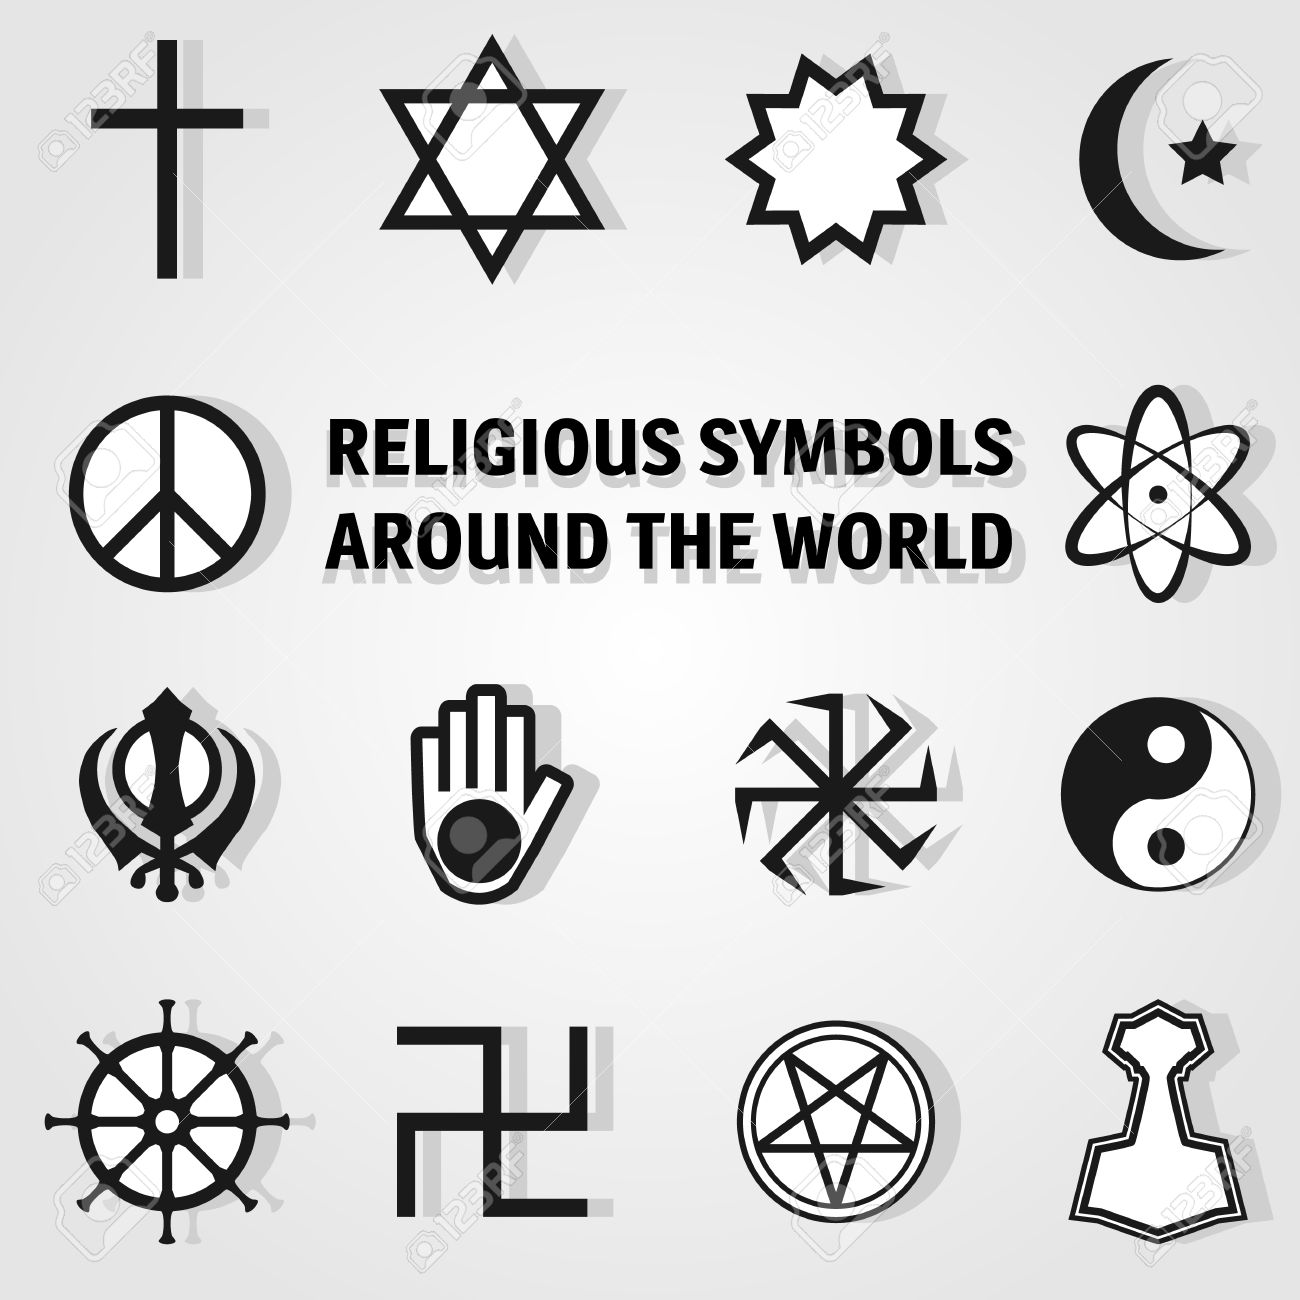 Religious symbols around the world icon set royalty free religious symbols around the world icon set stock vector 43945350 buycottarizona